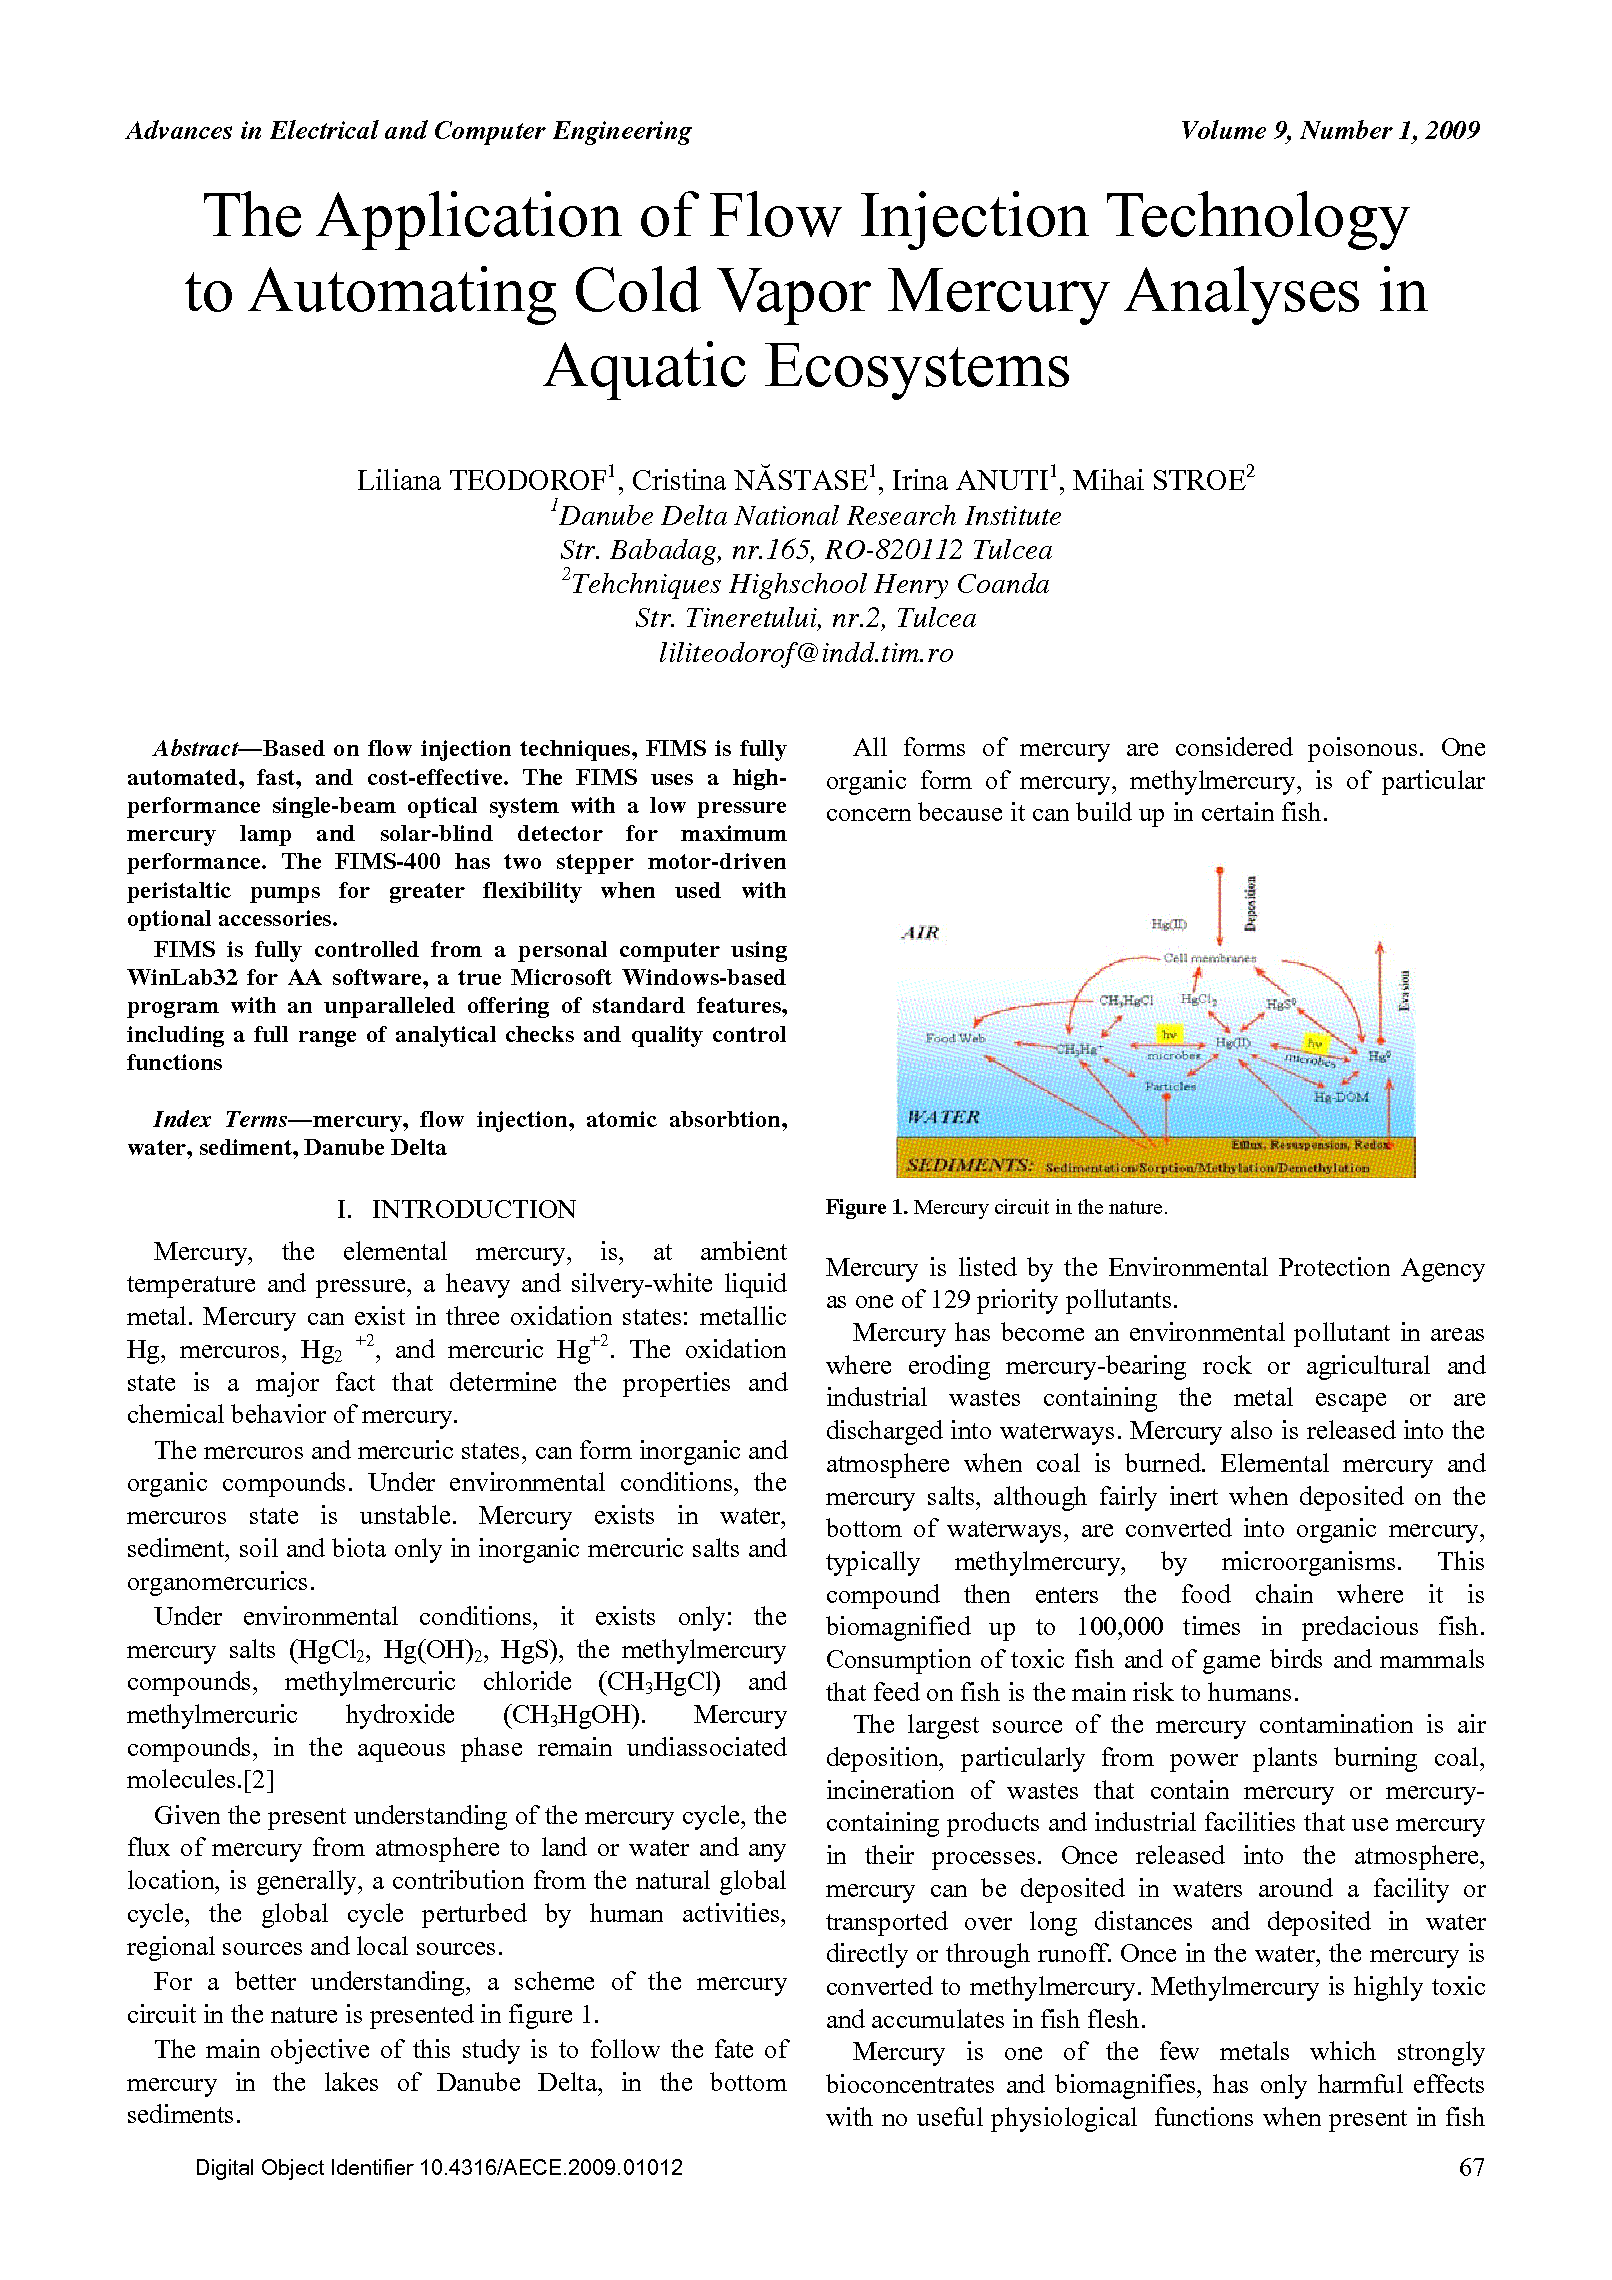 PDF Quickview for paper with DOI:10.4316/AECE.2009.01012